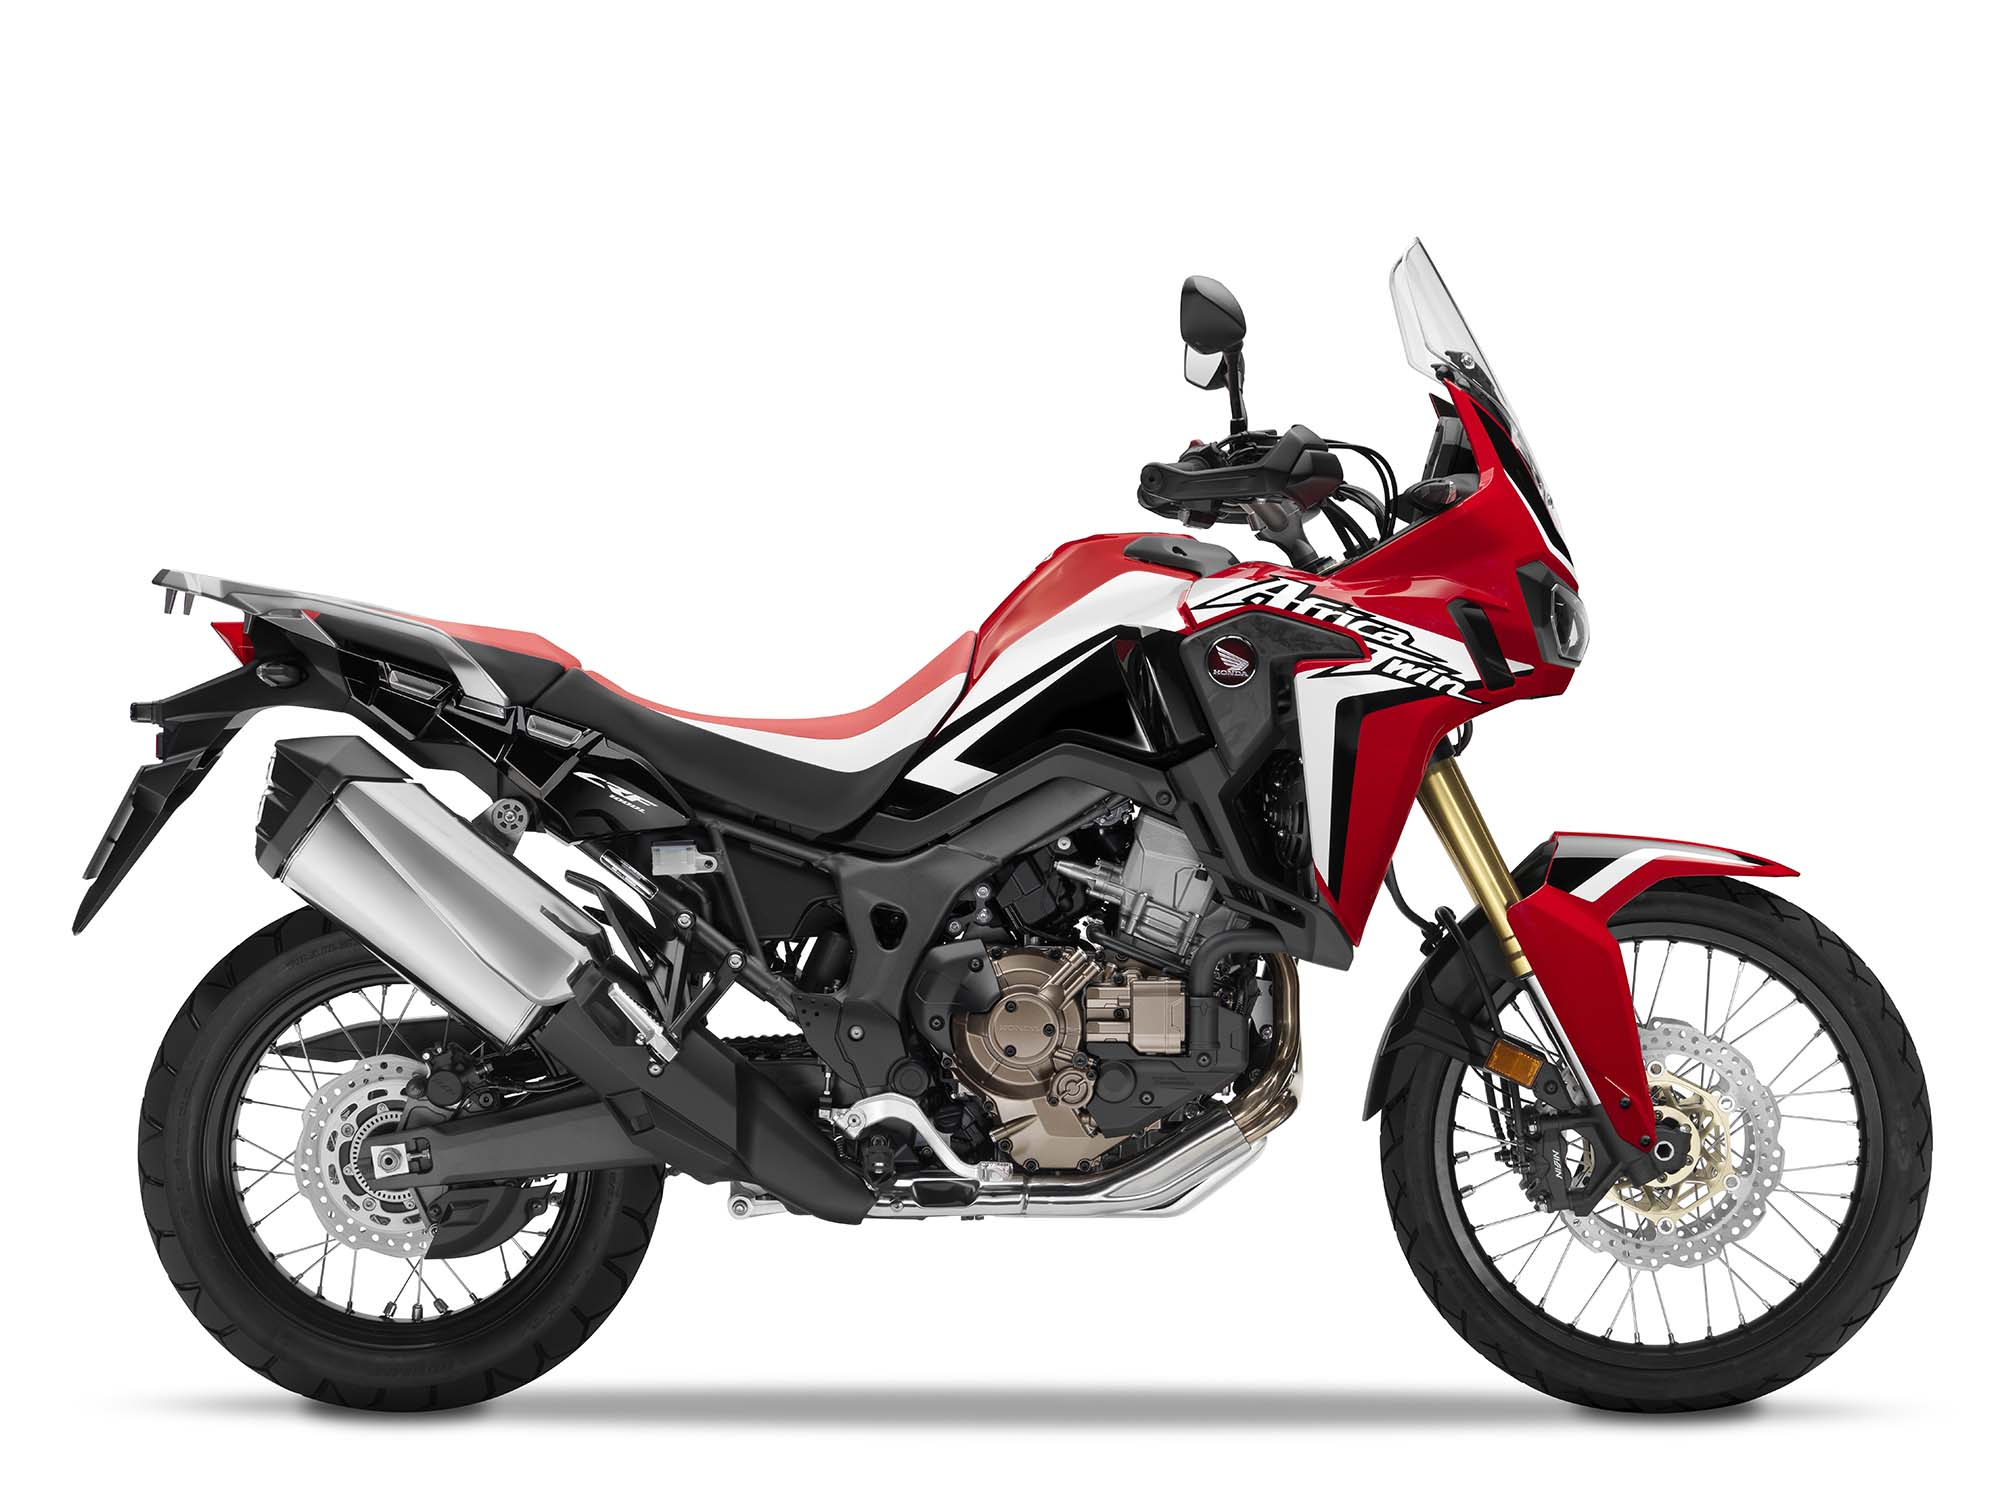 official details photos of the 2016 honda africa twin asphalt rubber. Black Bedroom Furniture Sets. Home Design Ideas